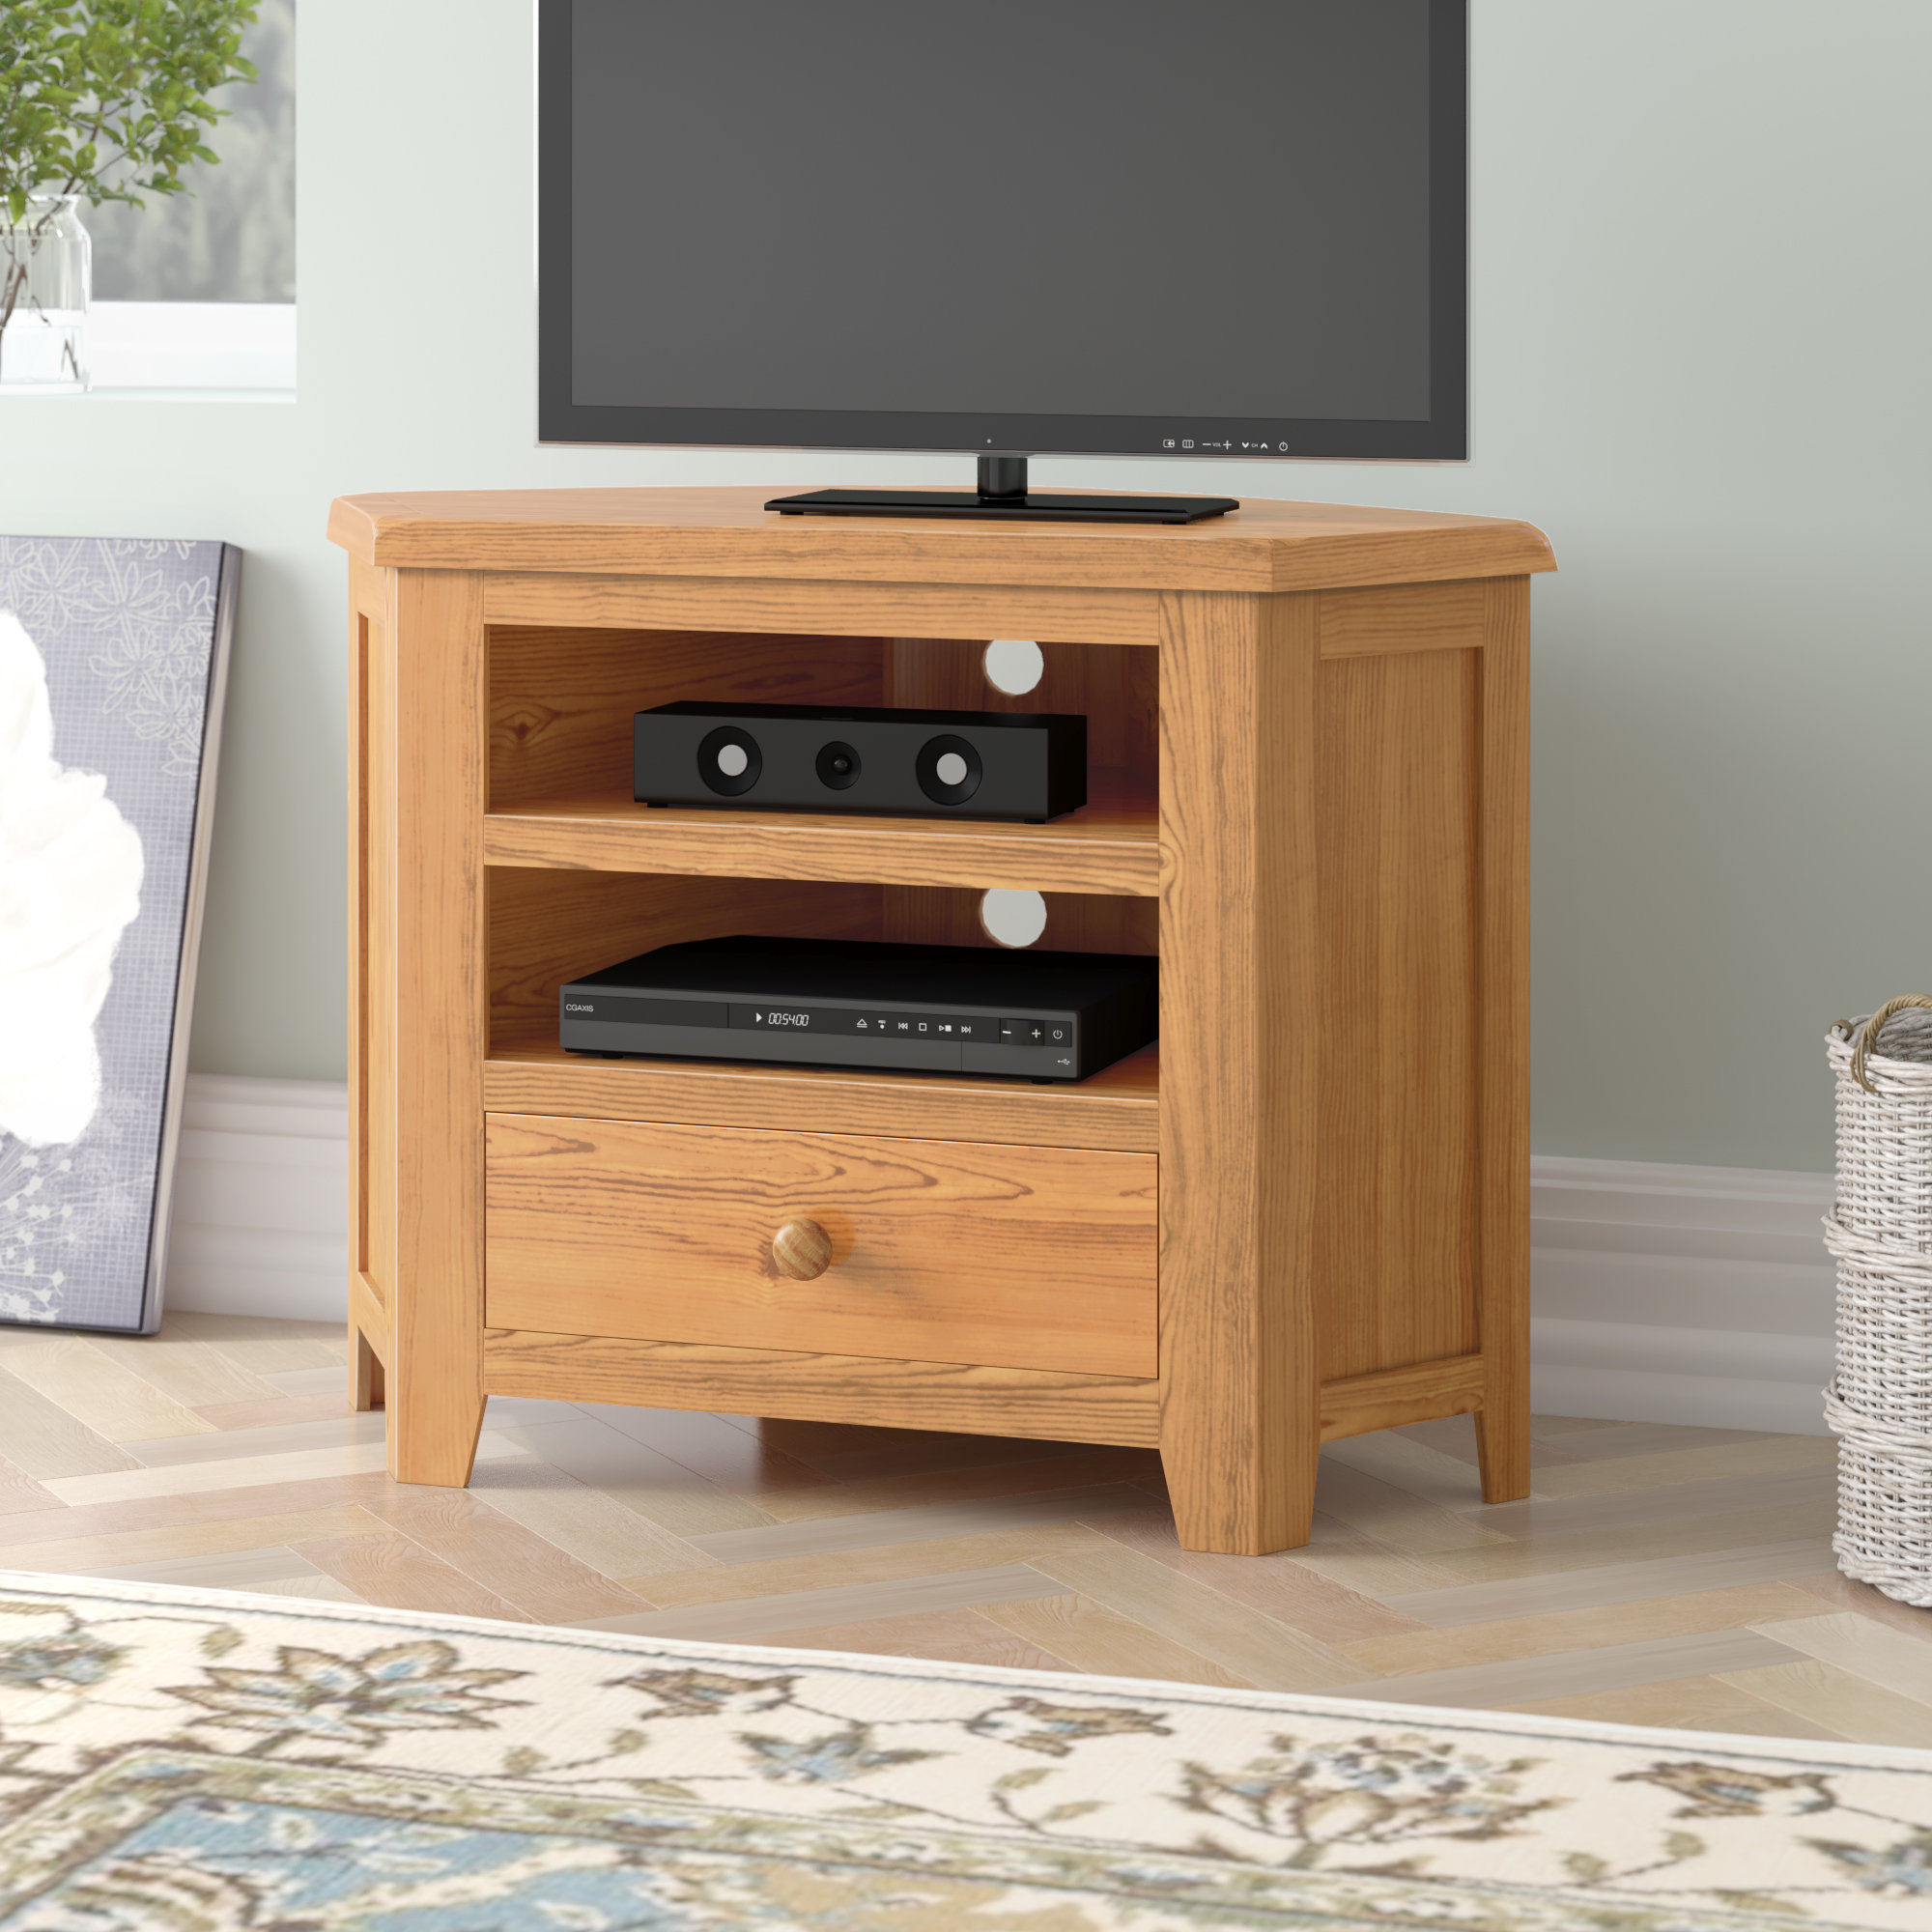 Traditional Tv Stands You'll Love | Wayfair.co.uk inside Valencia 70 Inch Tv Stands (Image 14 of 30)